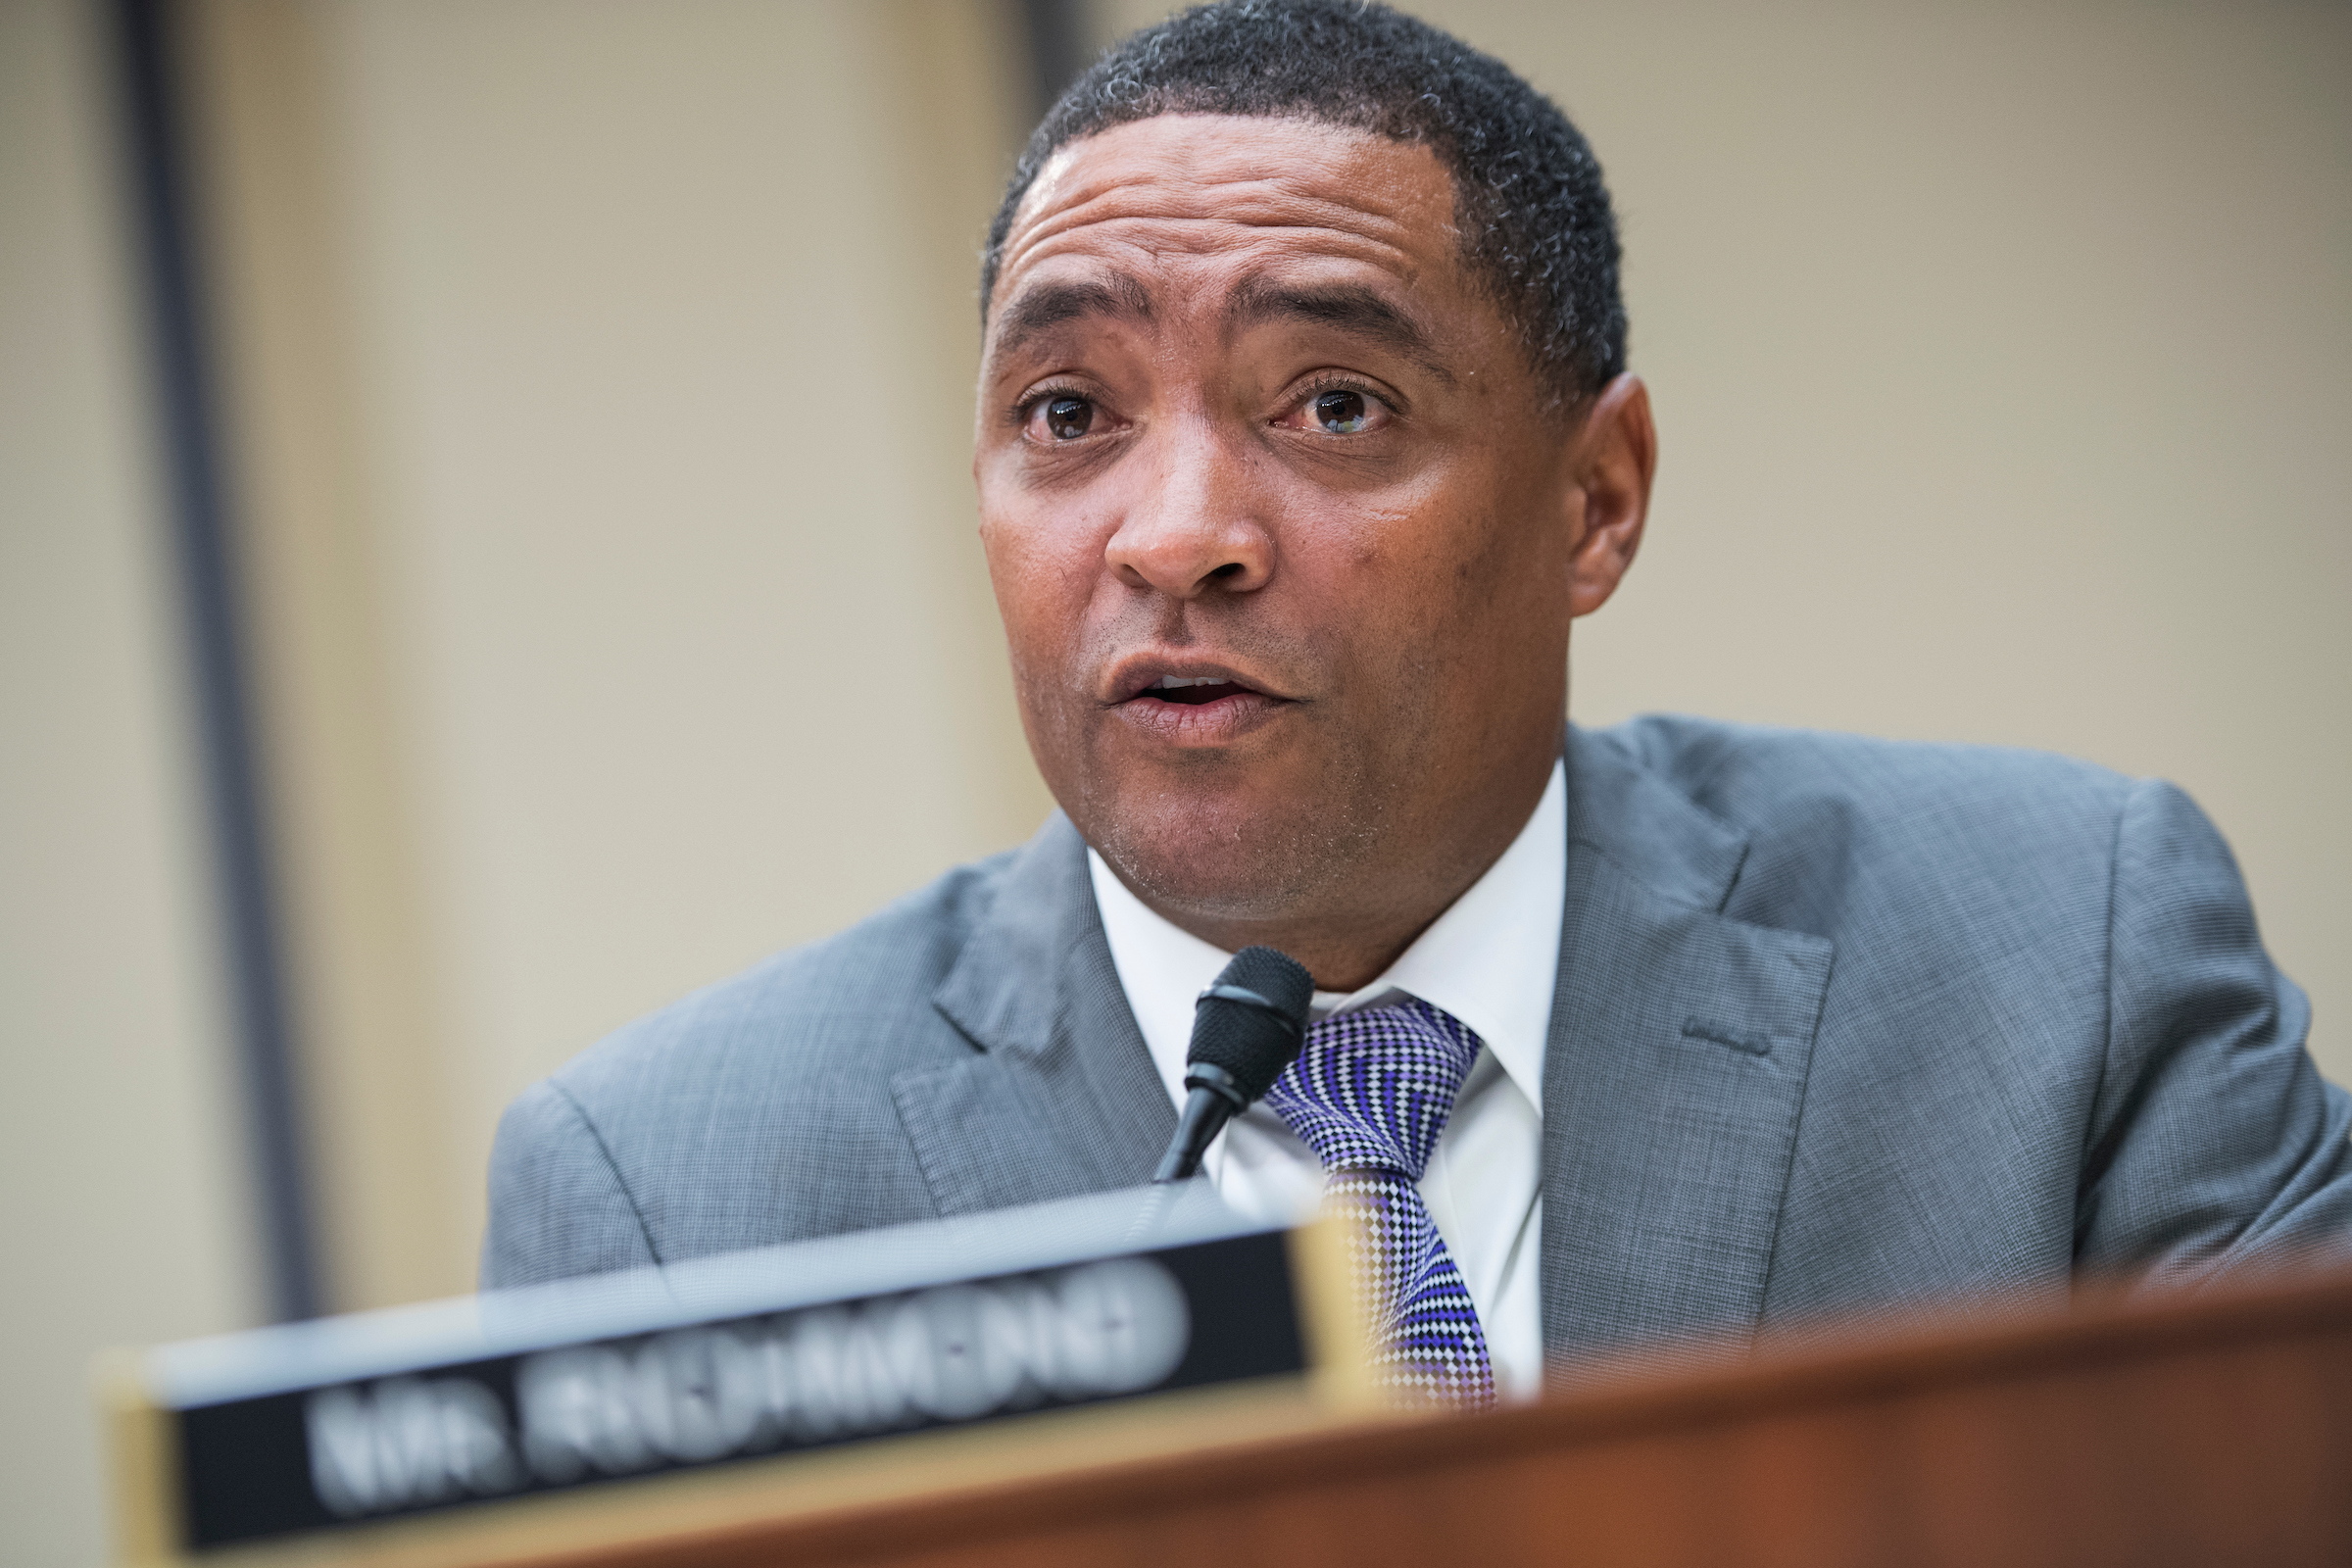 Since being elected chairman of the Congressional Black Caucus last fall, Rep. Cedric L. Richmond has not been shy about speaking up on several issues. (Tom Williams/CQ Roll Call file photo)